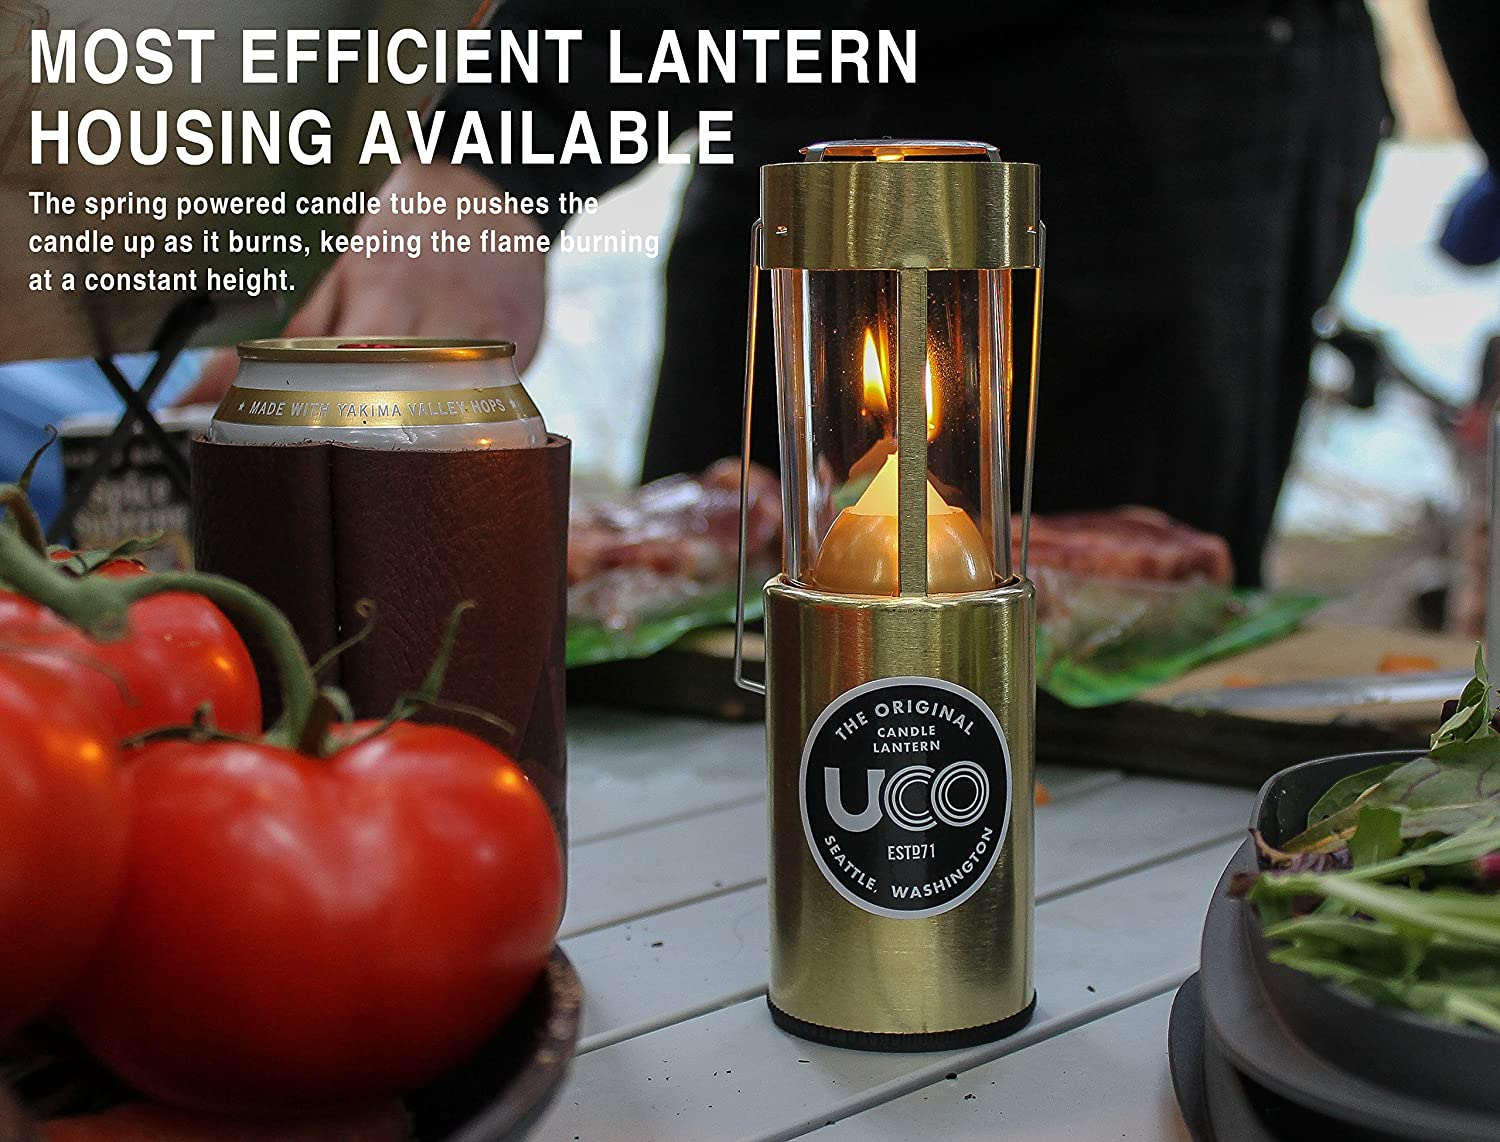 Anodized Black UCO Original Collapsible Candle Lantern